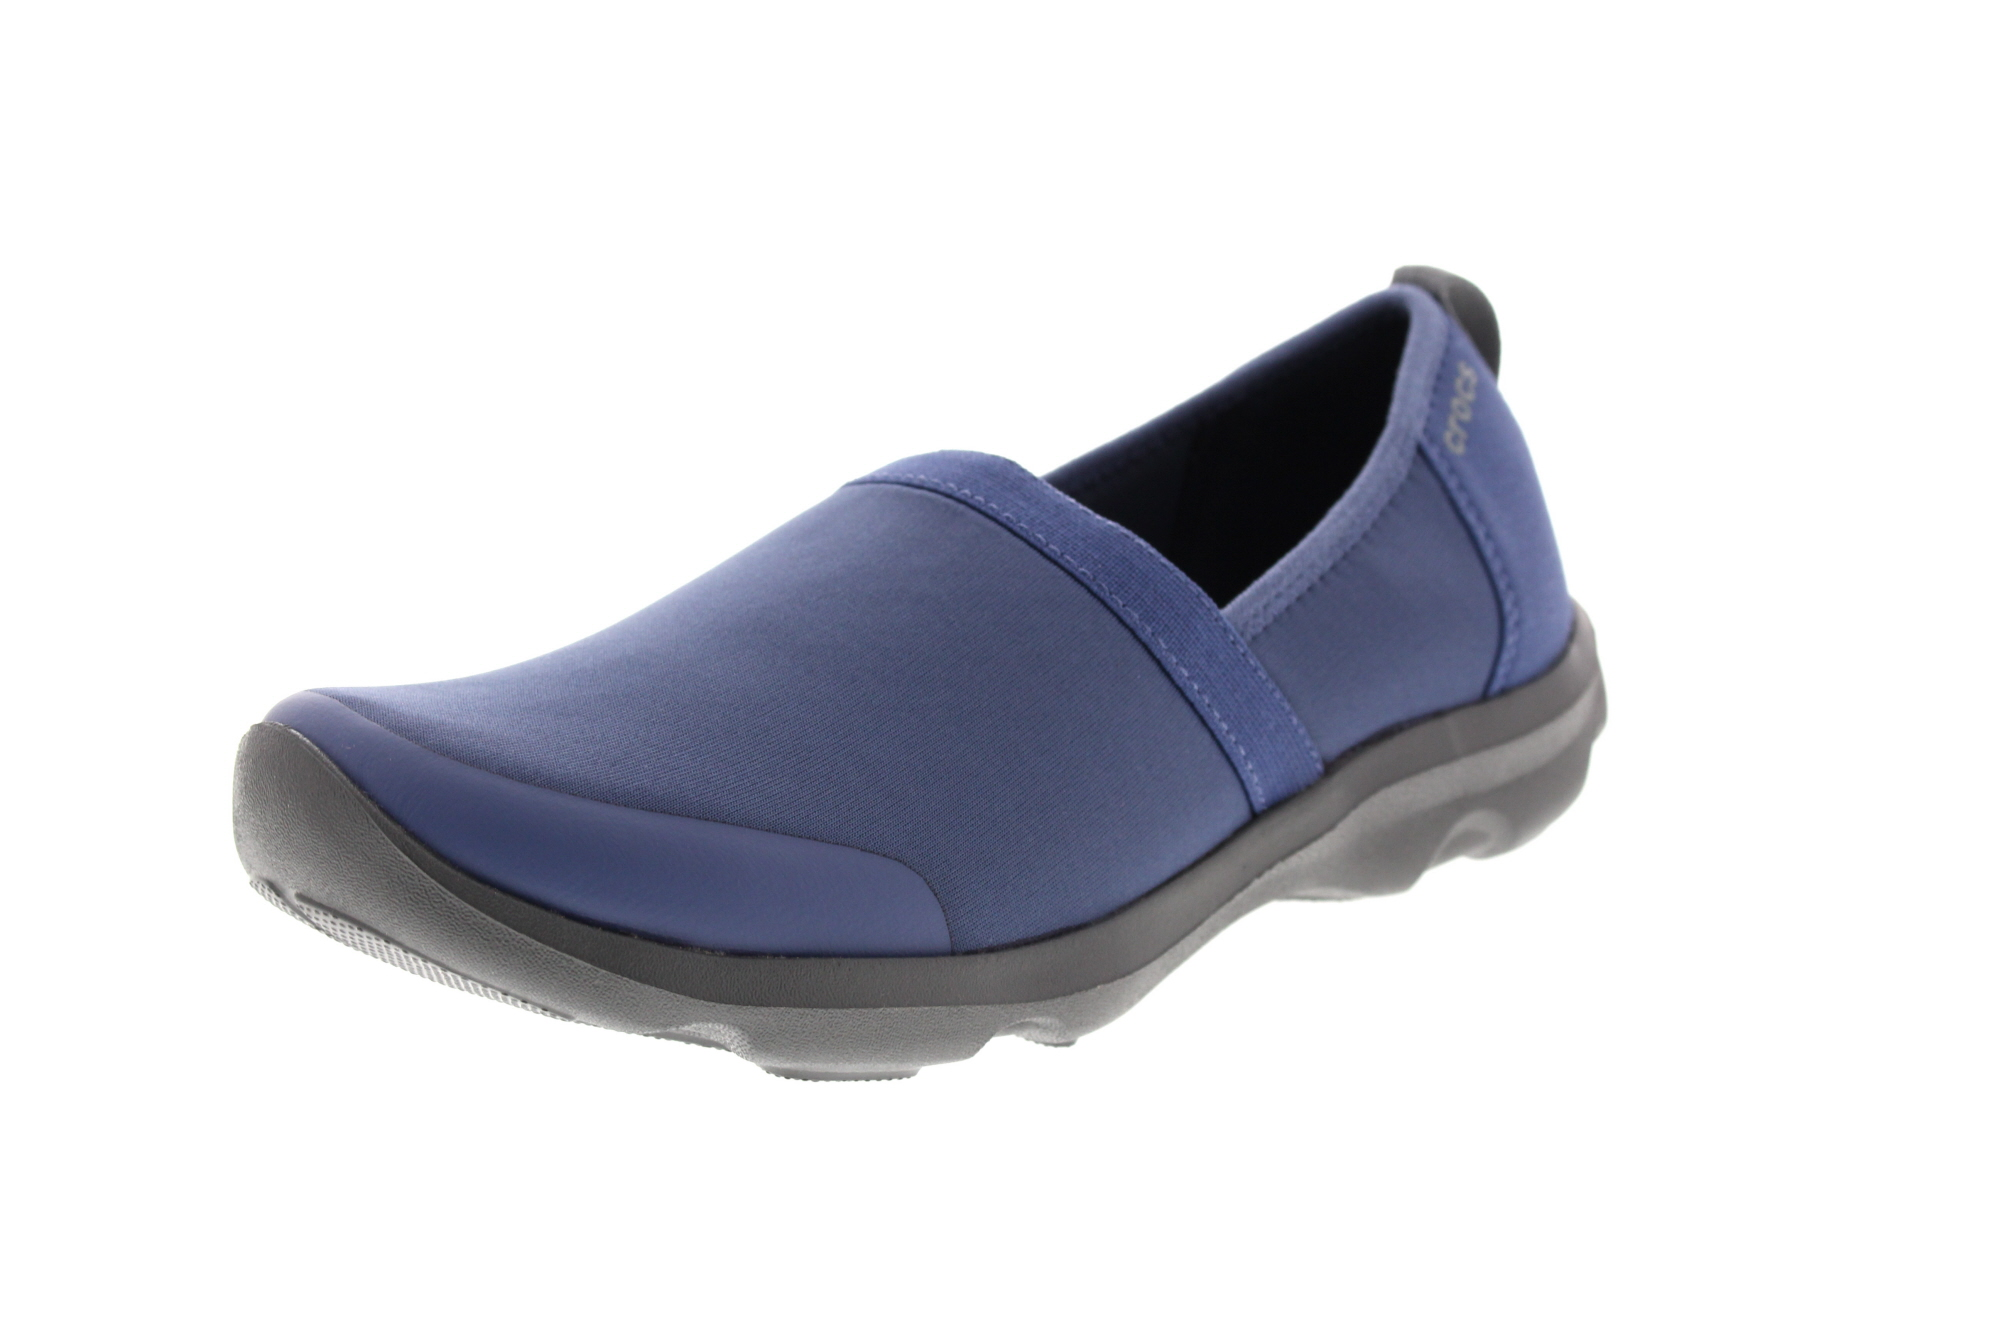 CROCS Slipper DUET BUSY DAY 2.0 Satya A-line bijou blue0-6490